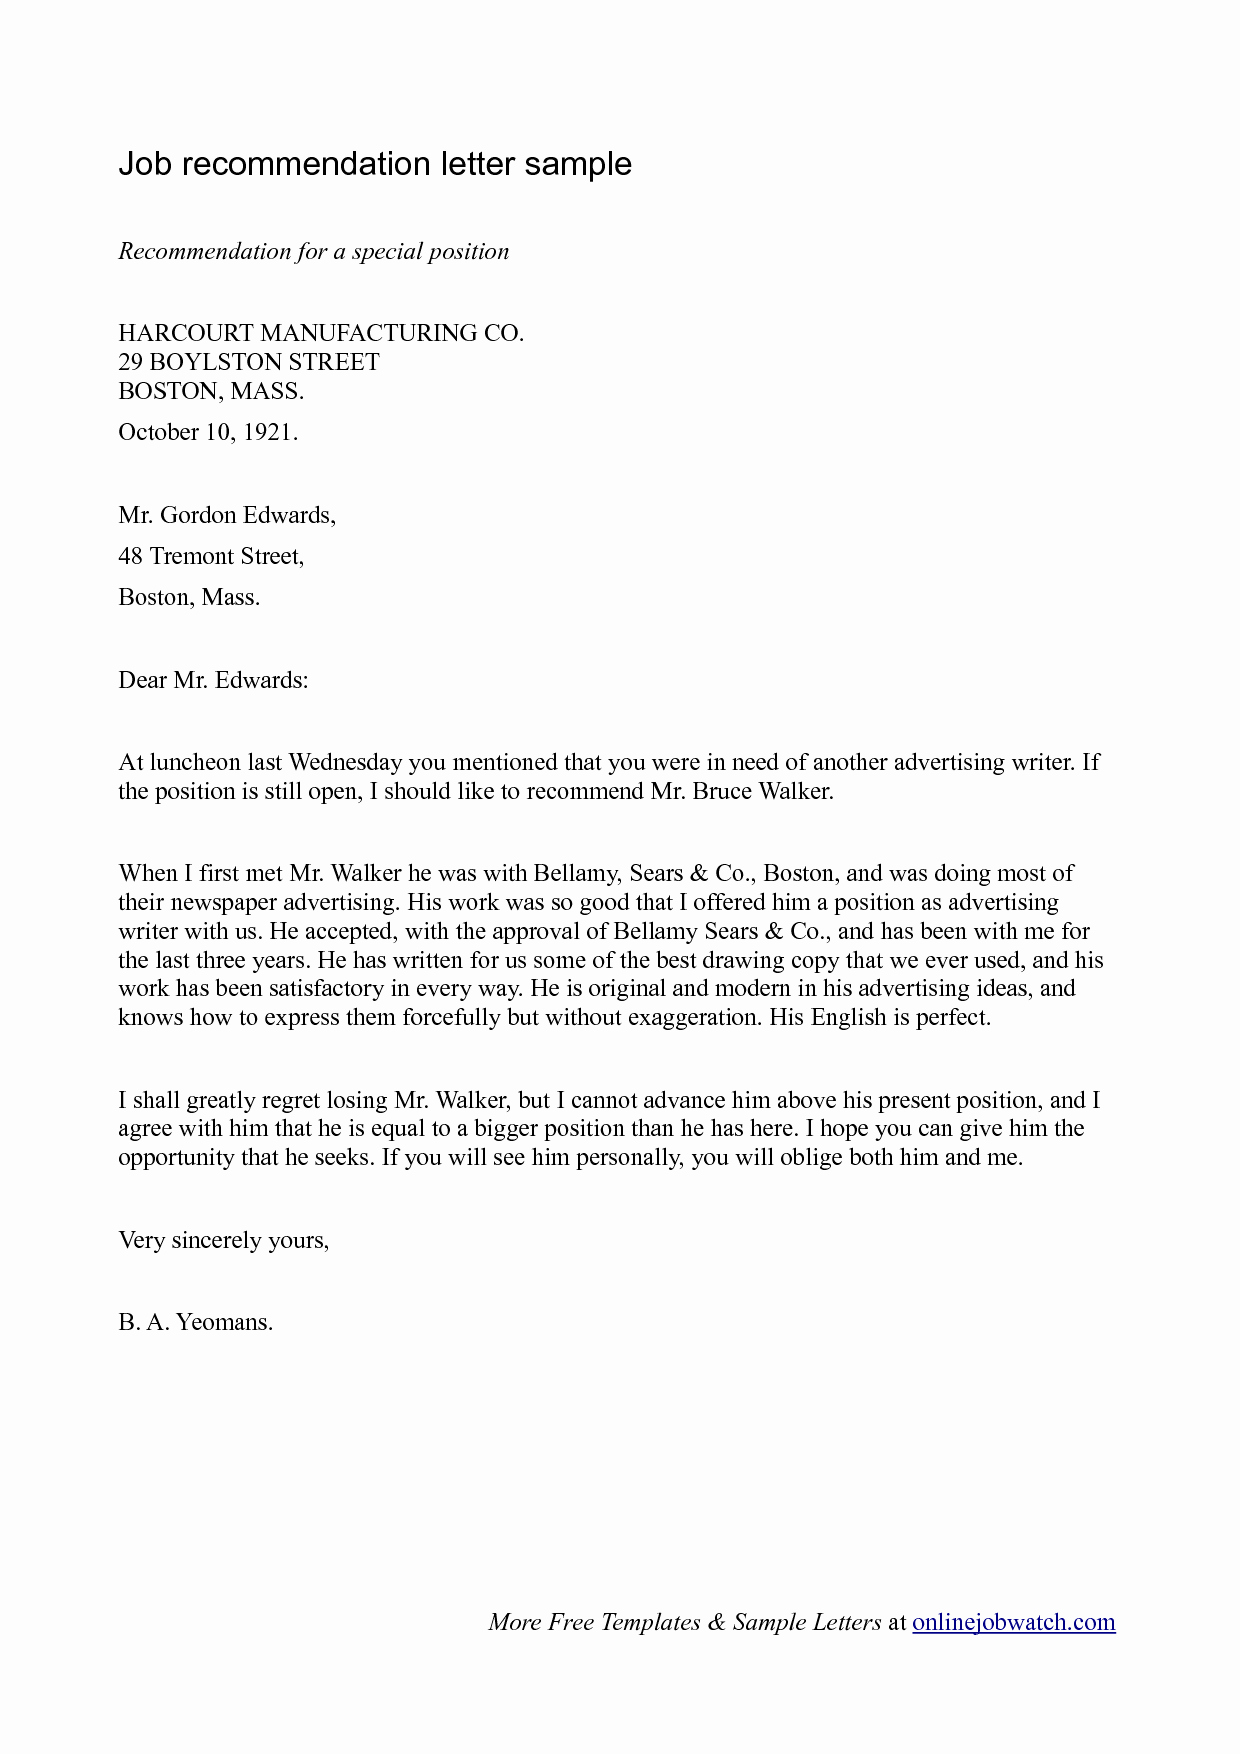 Template Sample Letter Of Recommendation Elegant Simple Guide Professional Reference Letter with Samples